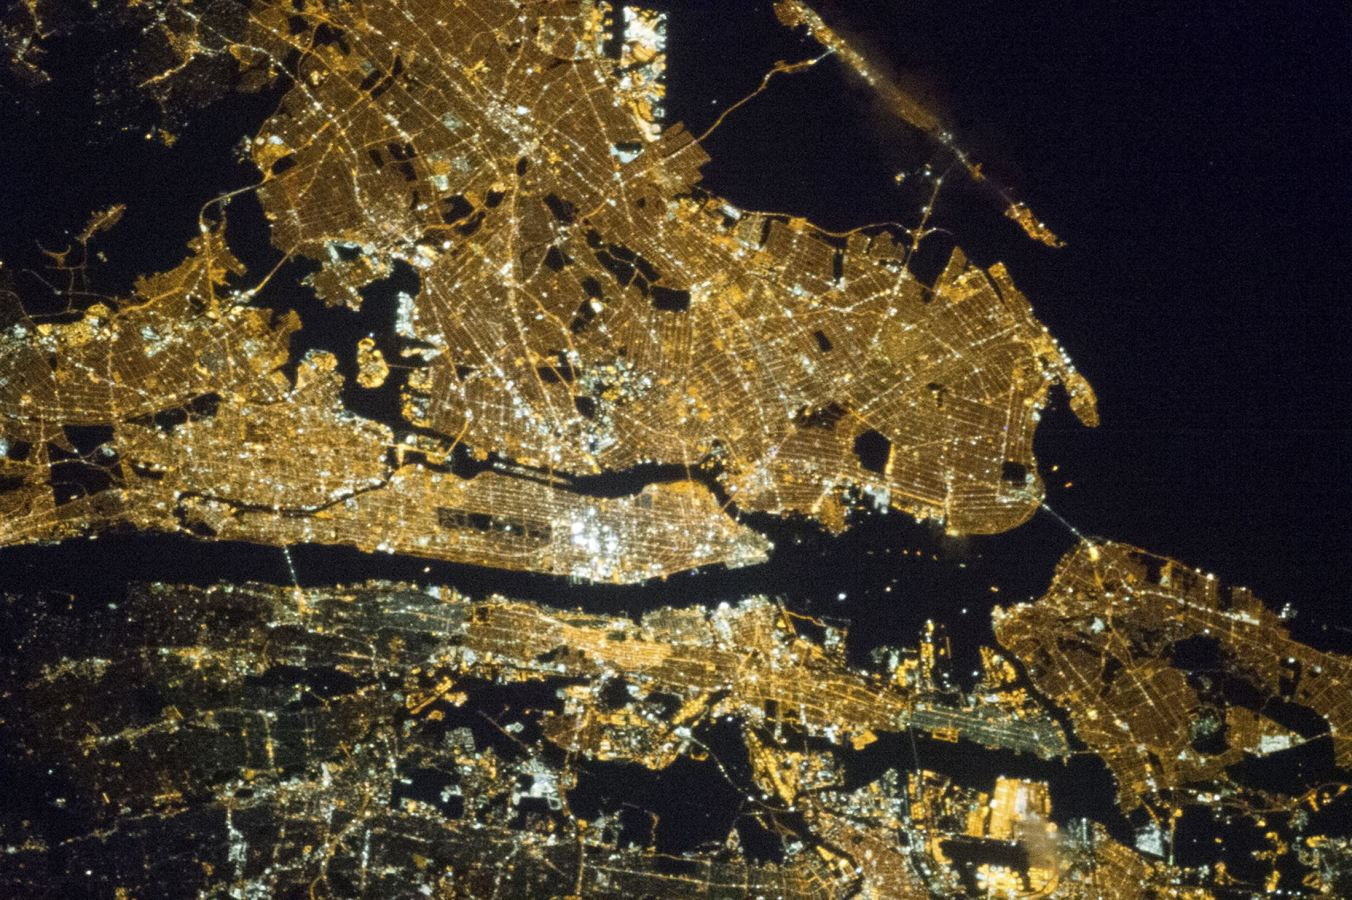 2013-04-01T151228Z_1758839400_TM4E9410SUF01_RTRMADP_3_NASA - Incredible photos from space - Science and Research